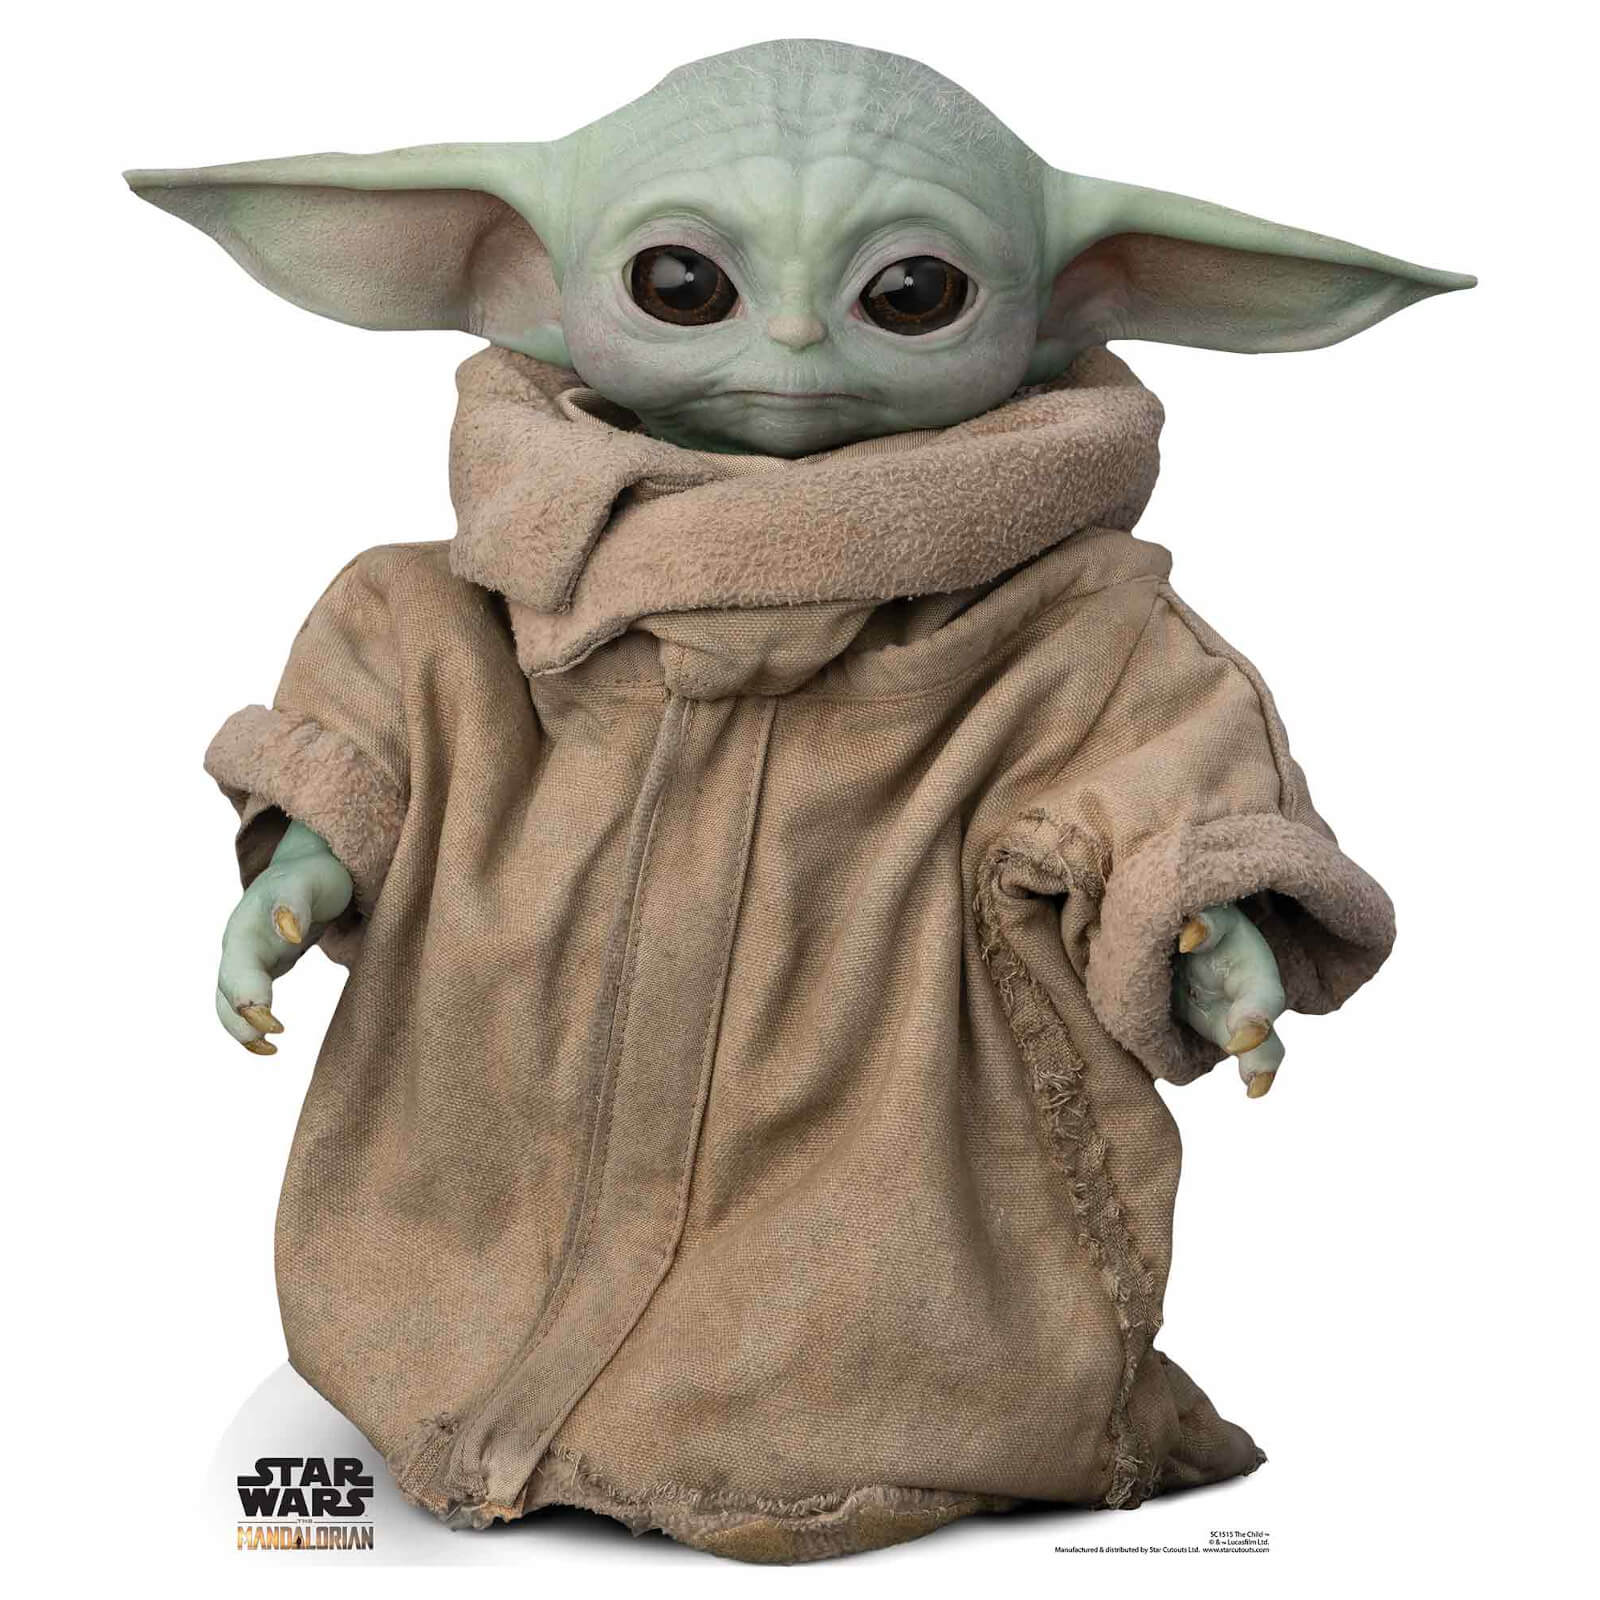 Image of The Mandalorian - The Child Baby Yoda Mini Cardboard Cut Out